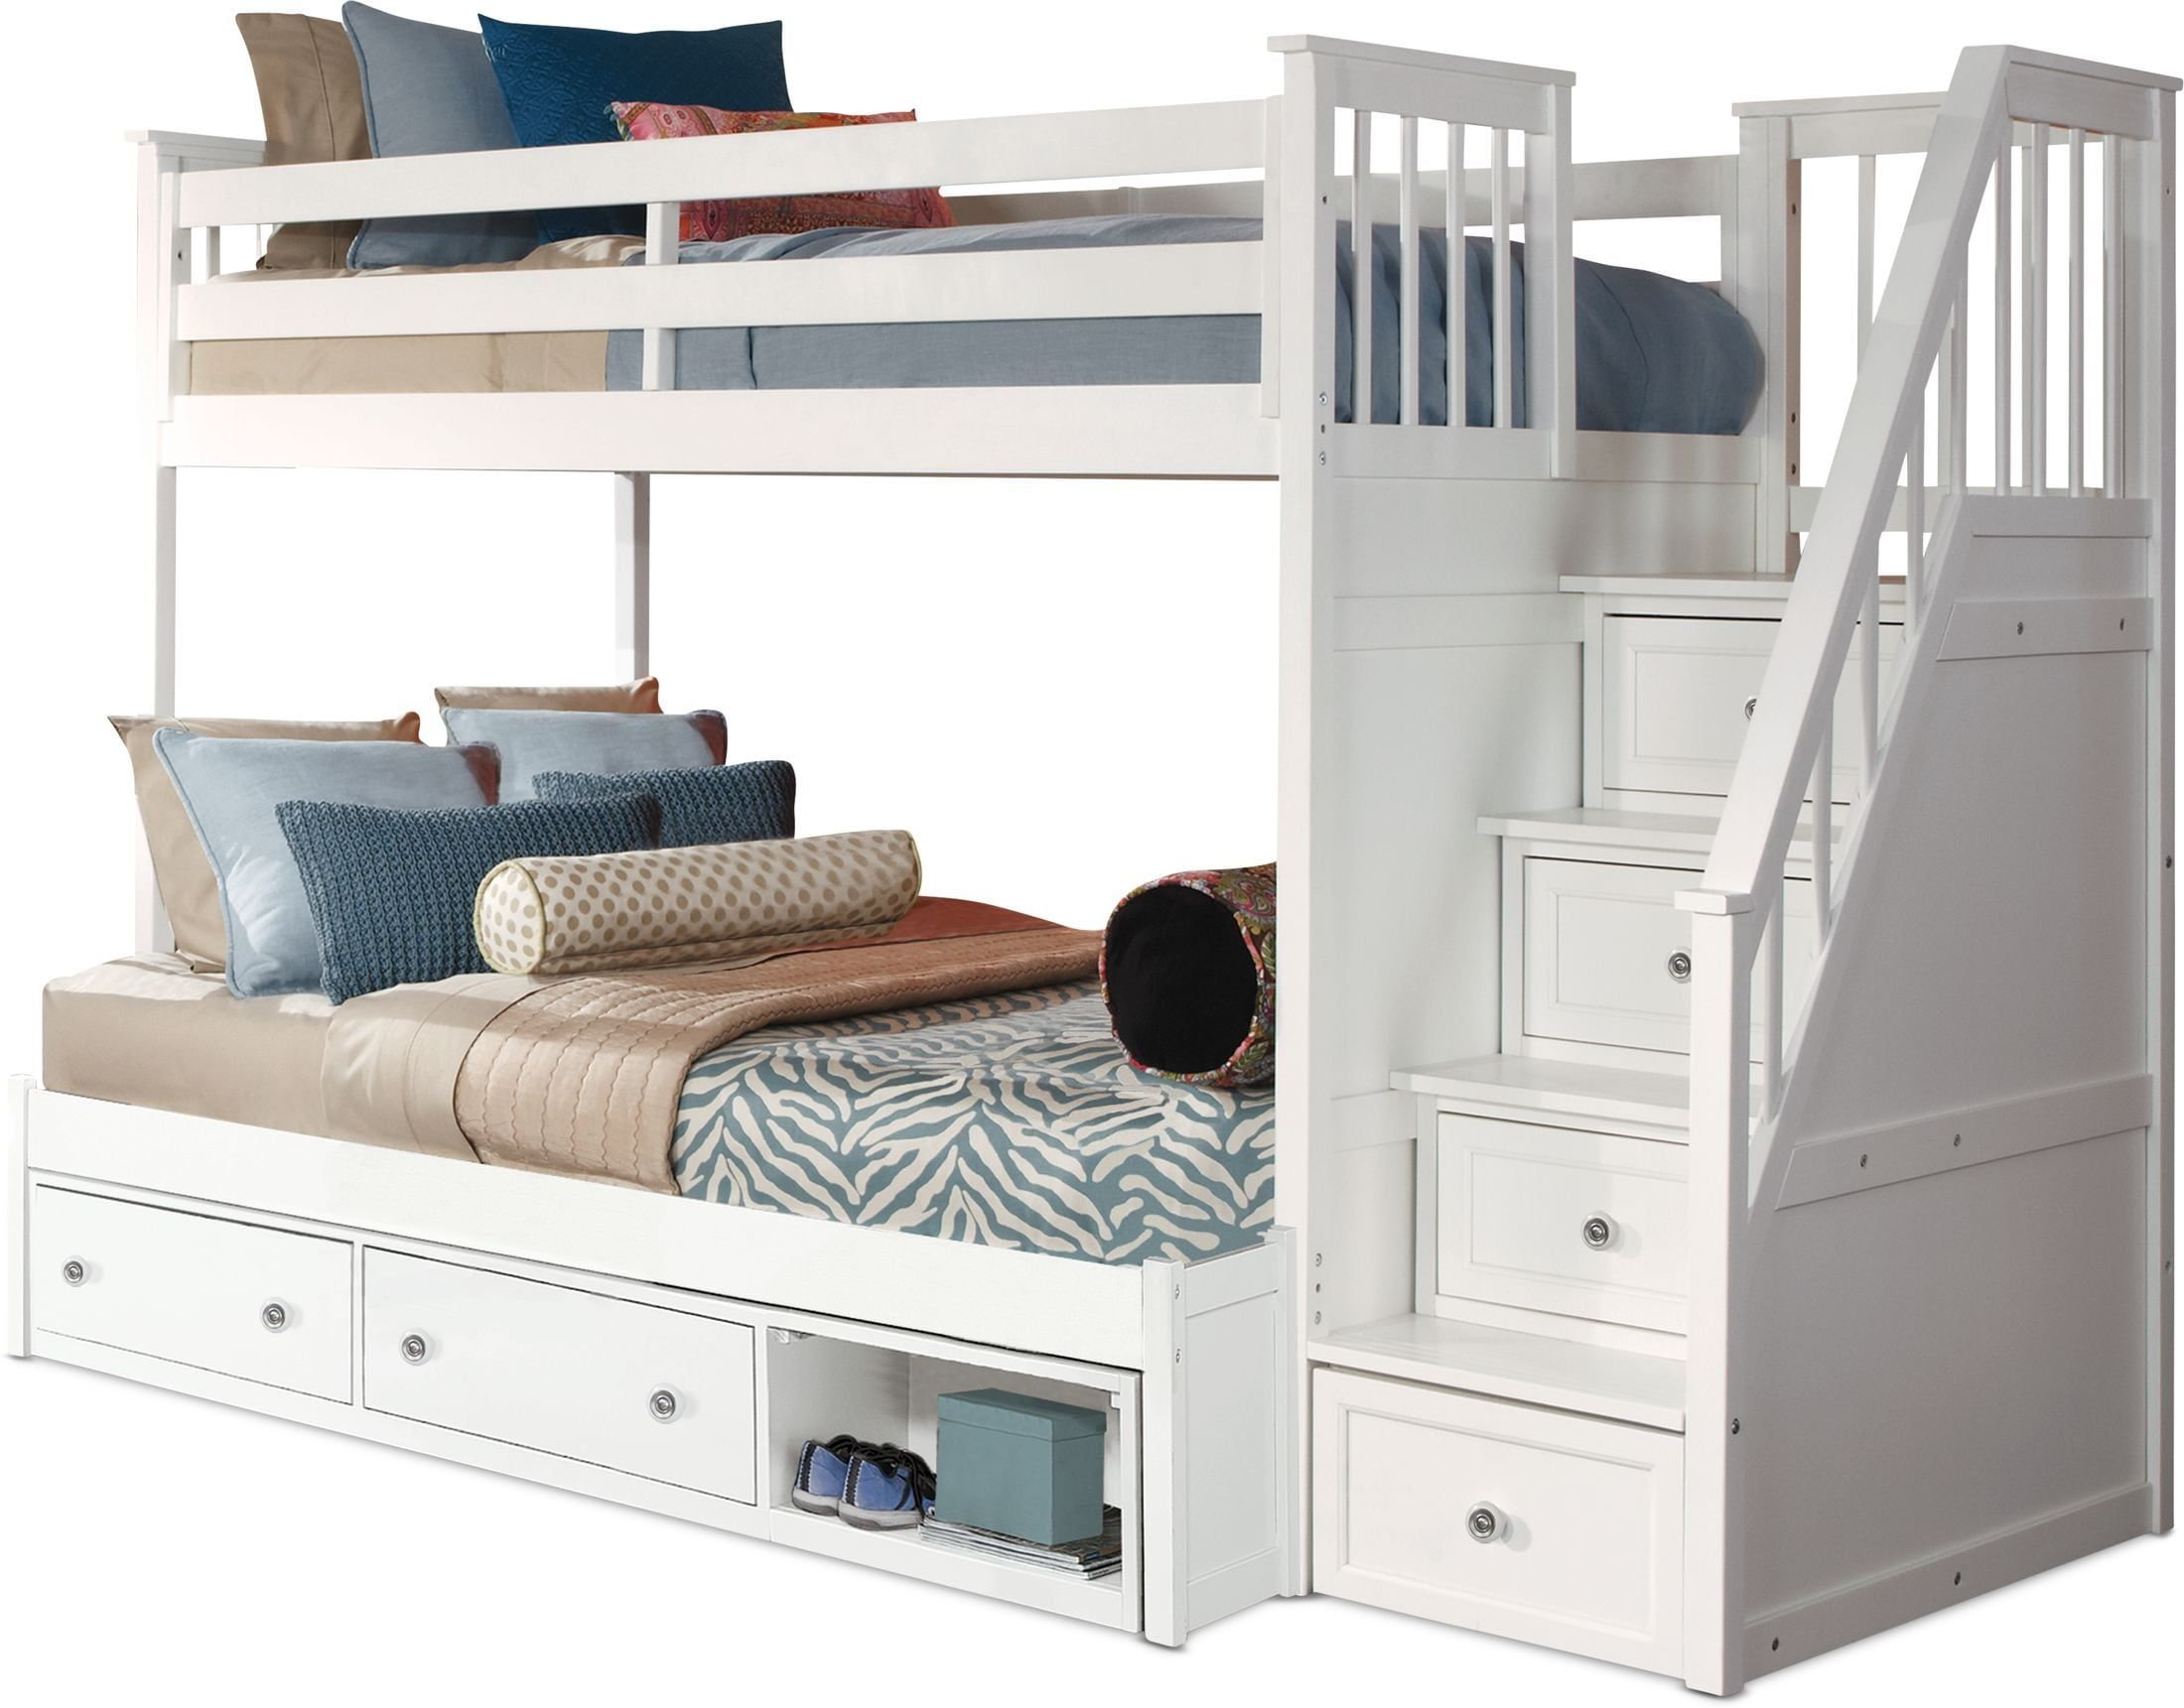 Flynn Twin Over Full Storage Bunk Bed With Storage Stairs White In 2021 Bunk Beds With Storage Bunk Beds Built In Bunk Bed Designs Twin over full bunk beds with stairs